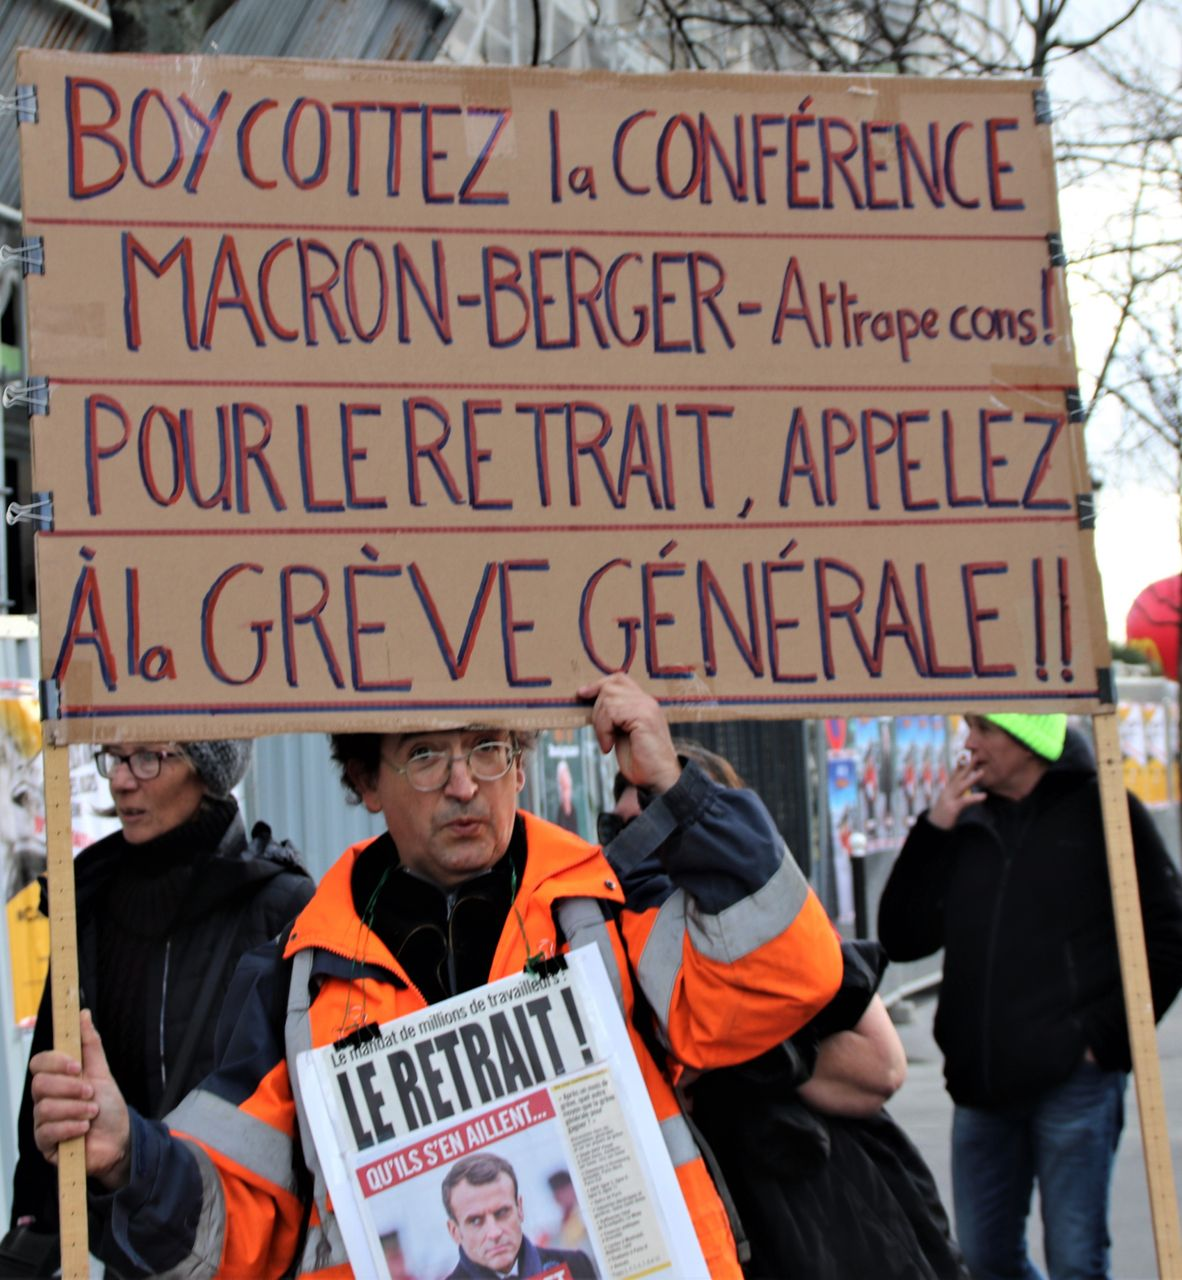 Boycott the Macron-CFDT (pro-government union federation) conference, it's a trap. To end the cuts call a general strike, the sign says